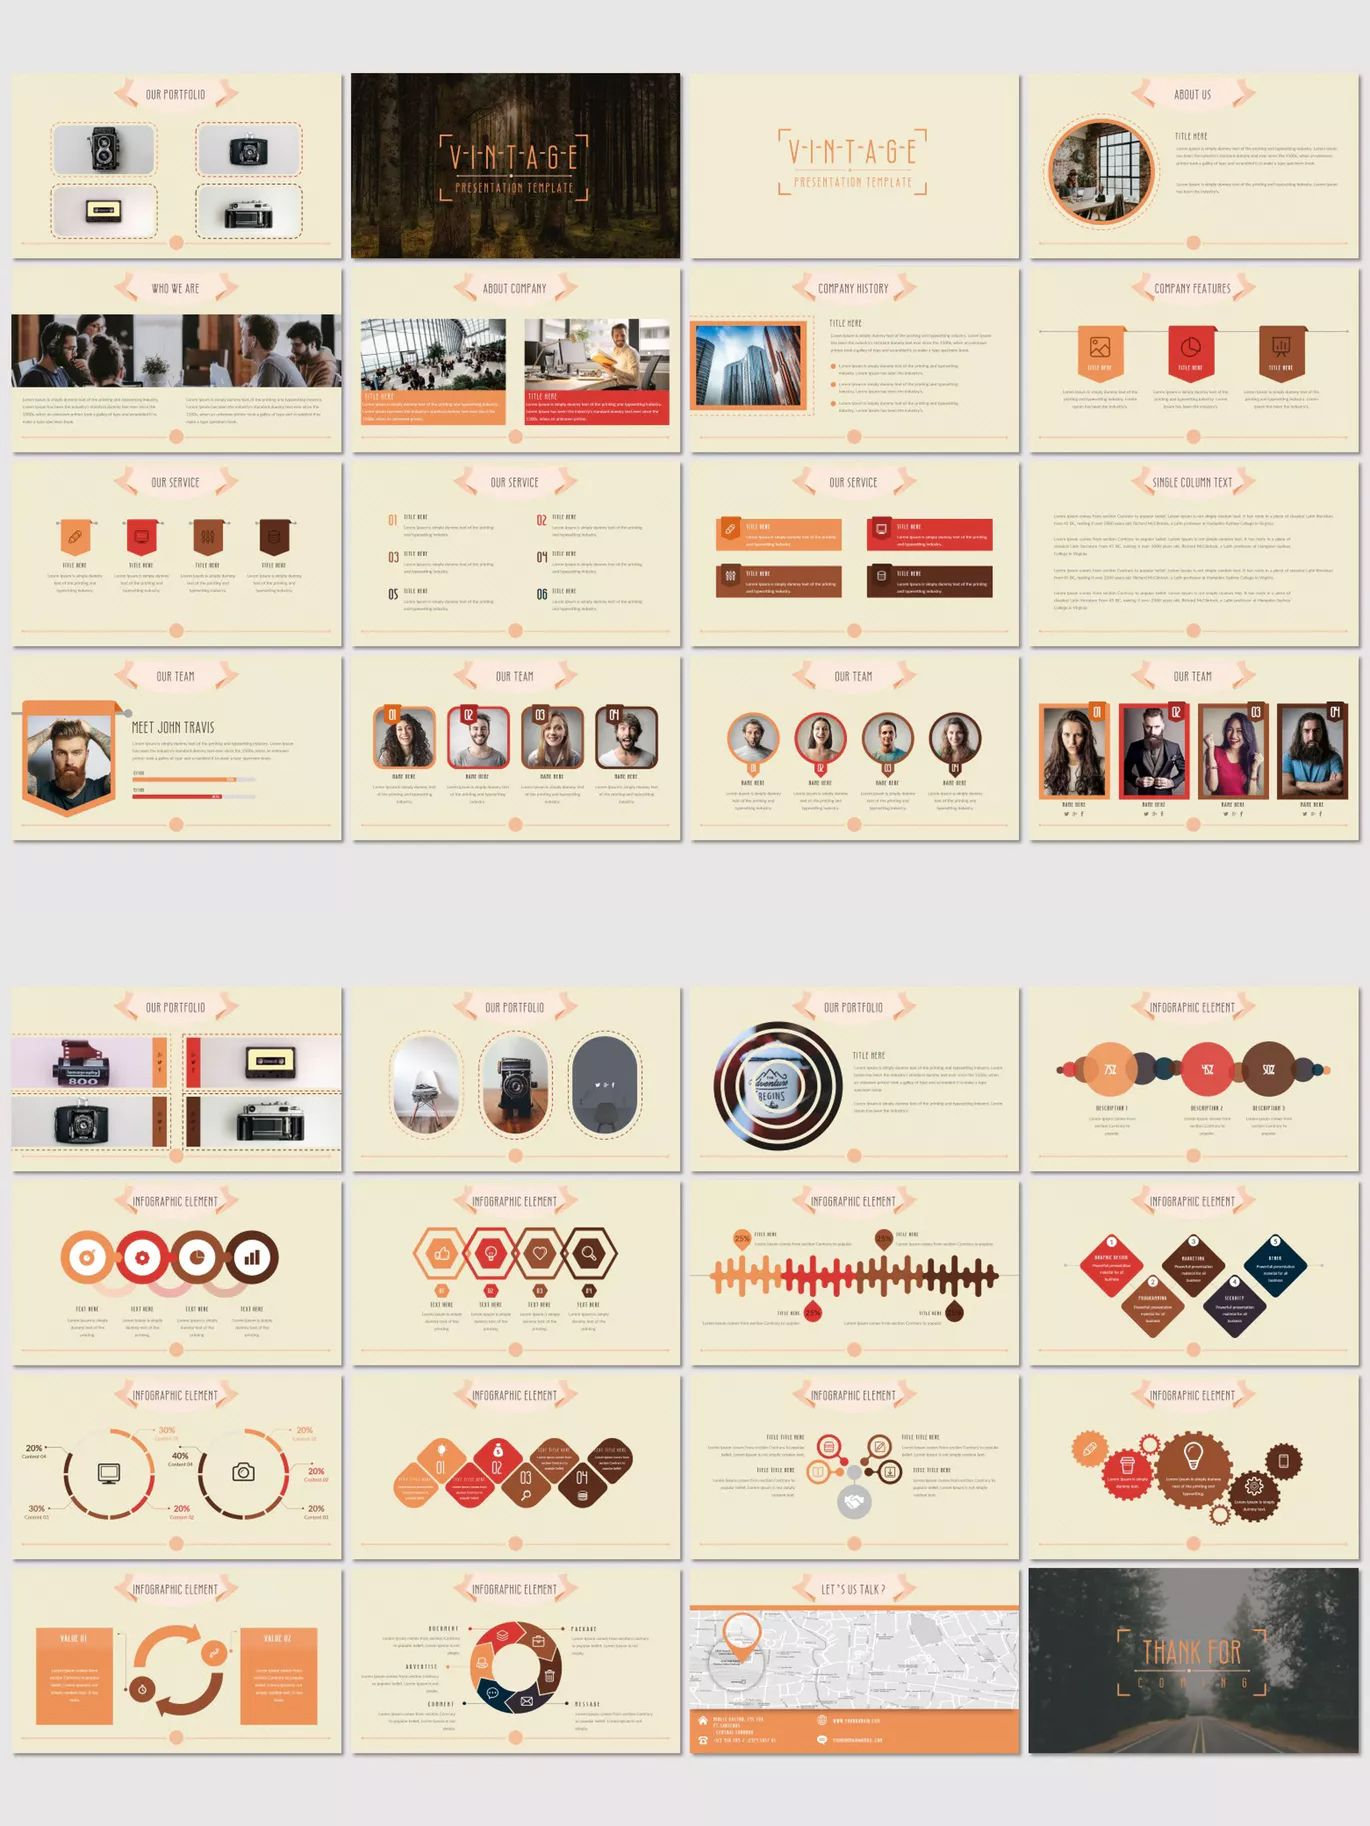 Vintage Powerpoint Template By Inspirasign On Envato Elements Keynote Template Presentation Design Template Powerpoint Presentation Templates